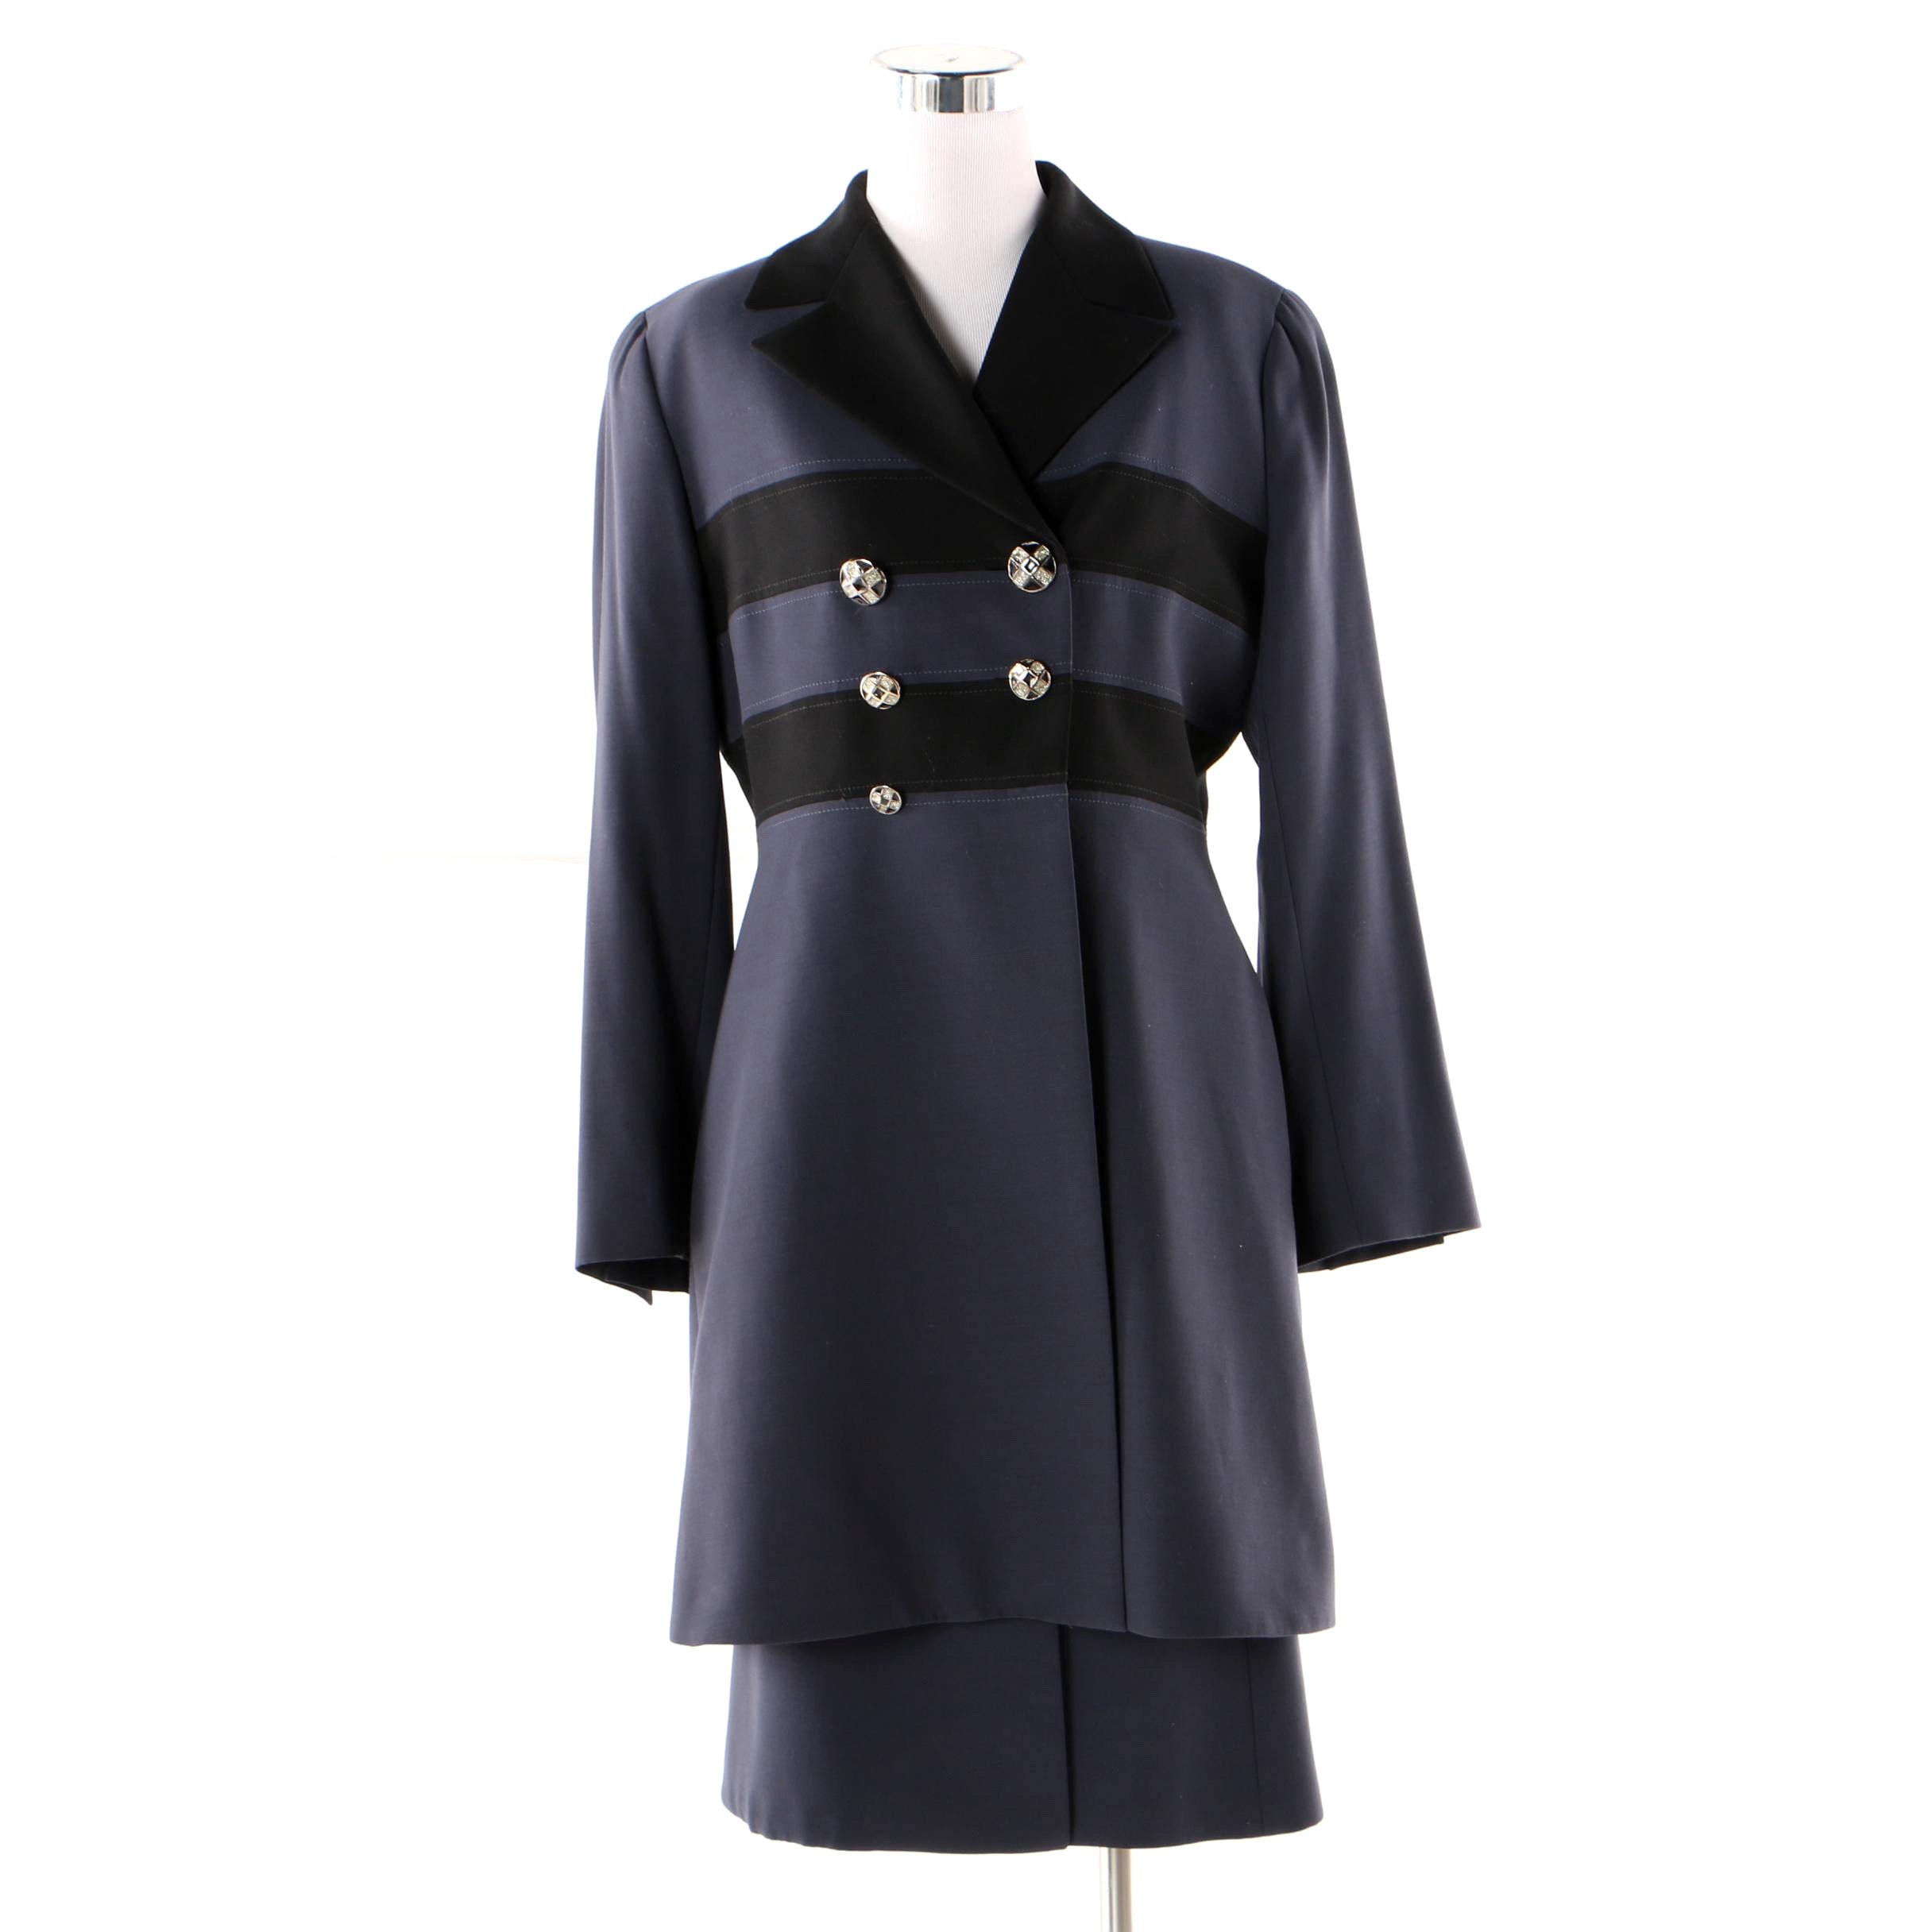 Women's Vintage Provasou Torino Navy and Black Wool Skirt Suit, Made in Italy